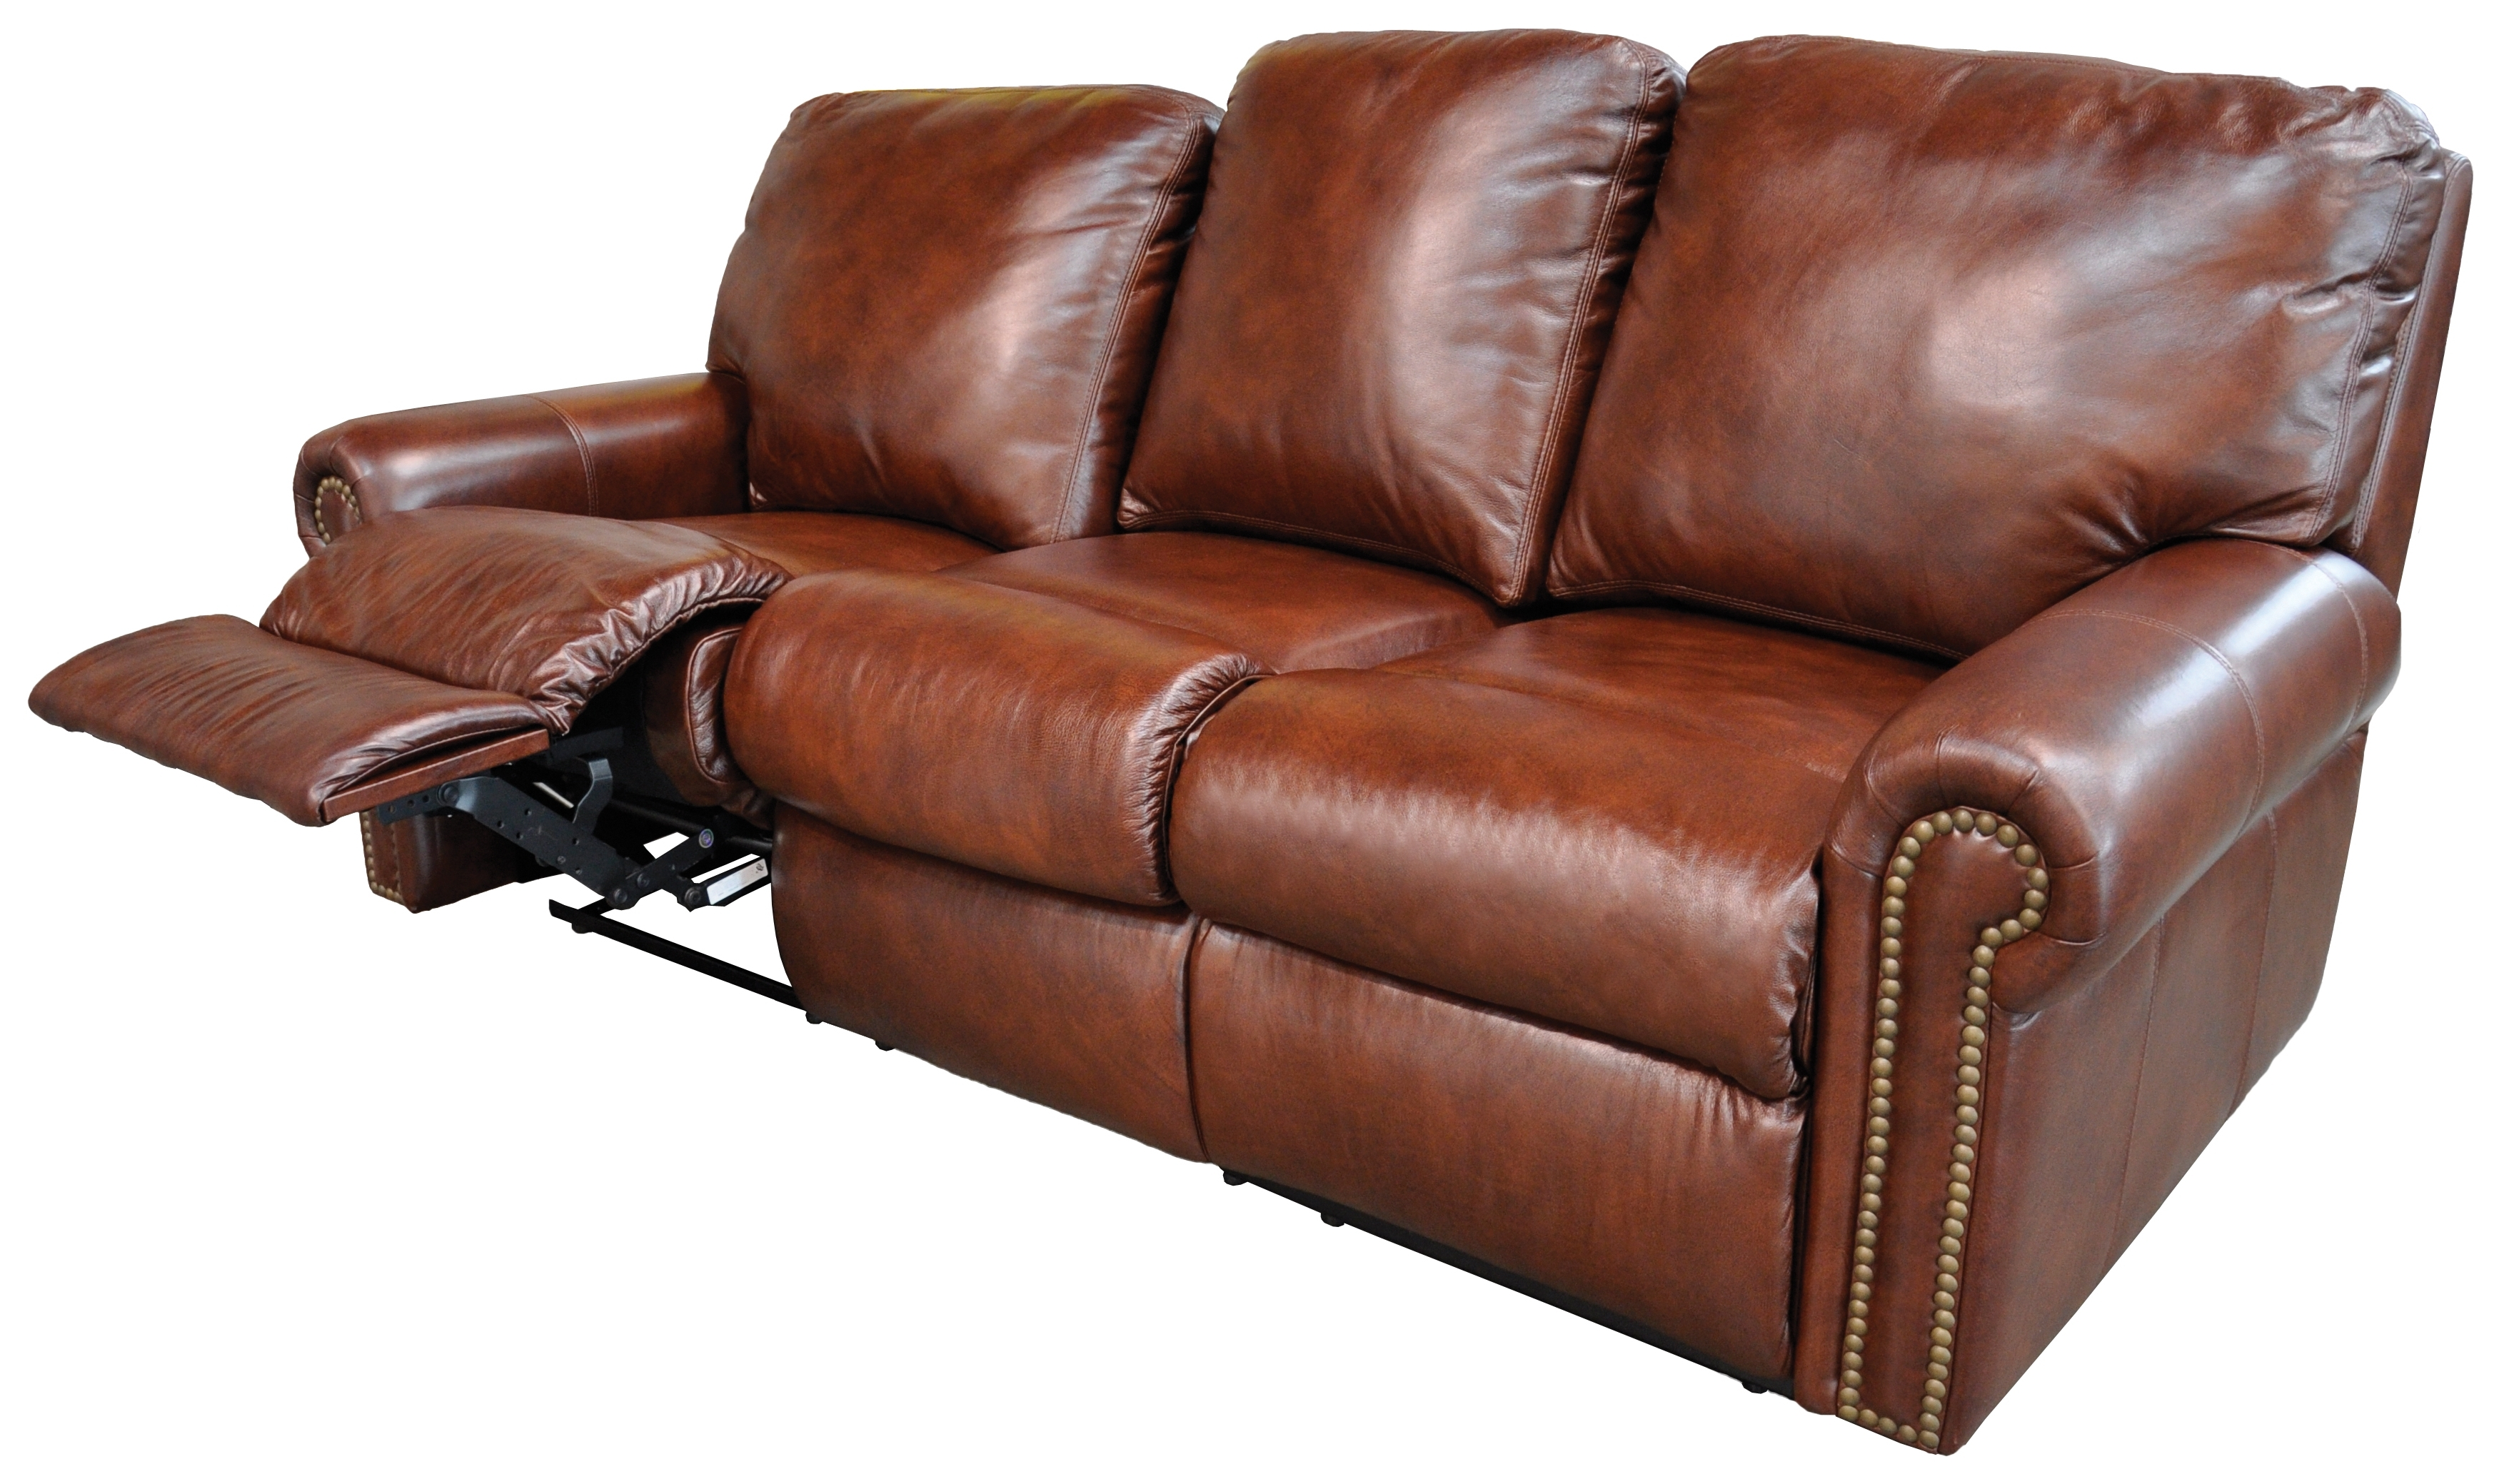 Sofa Recliner Leather – Home And Textiles With Trendy Modern Reclining Leather Sofas (View 10 of 15)